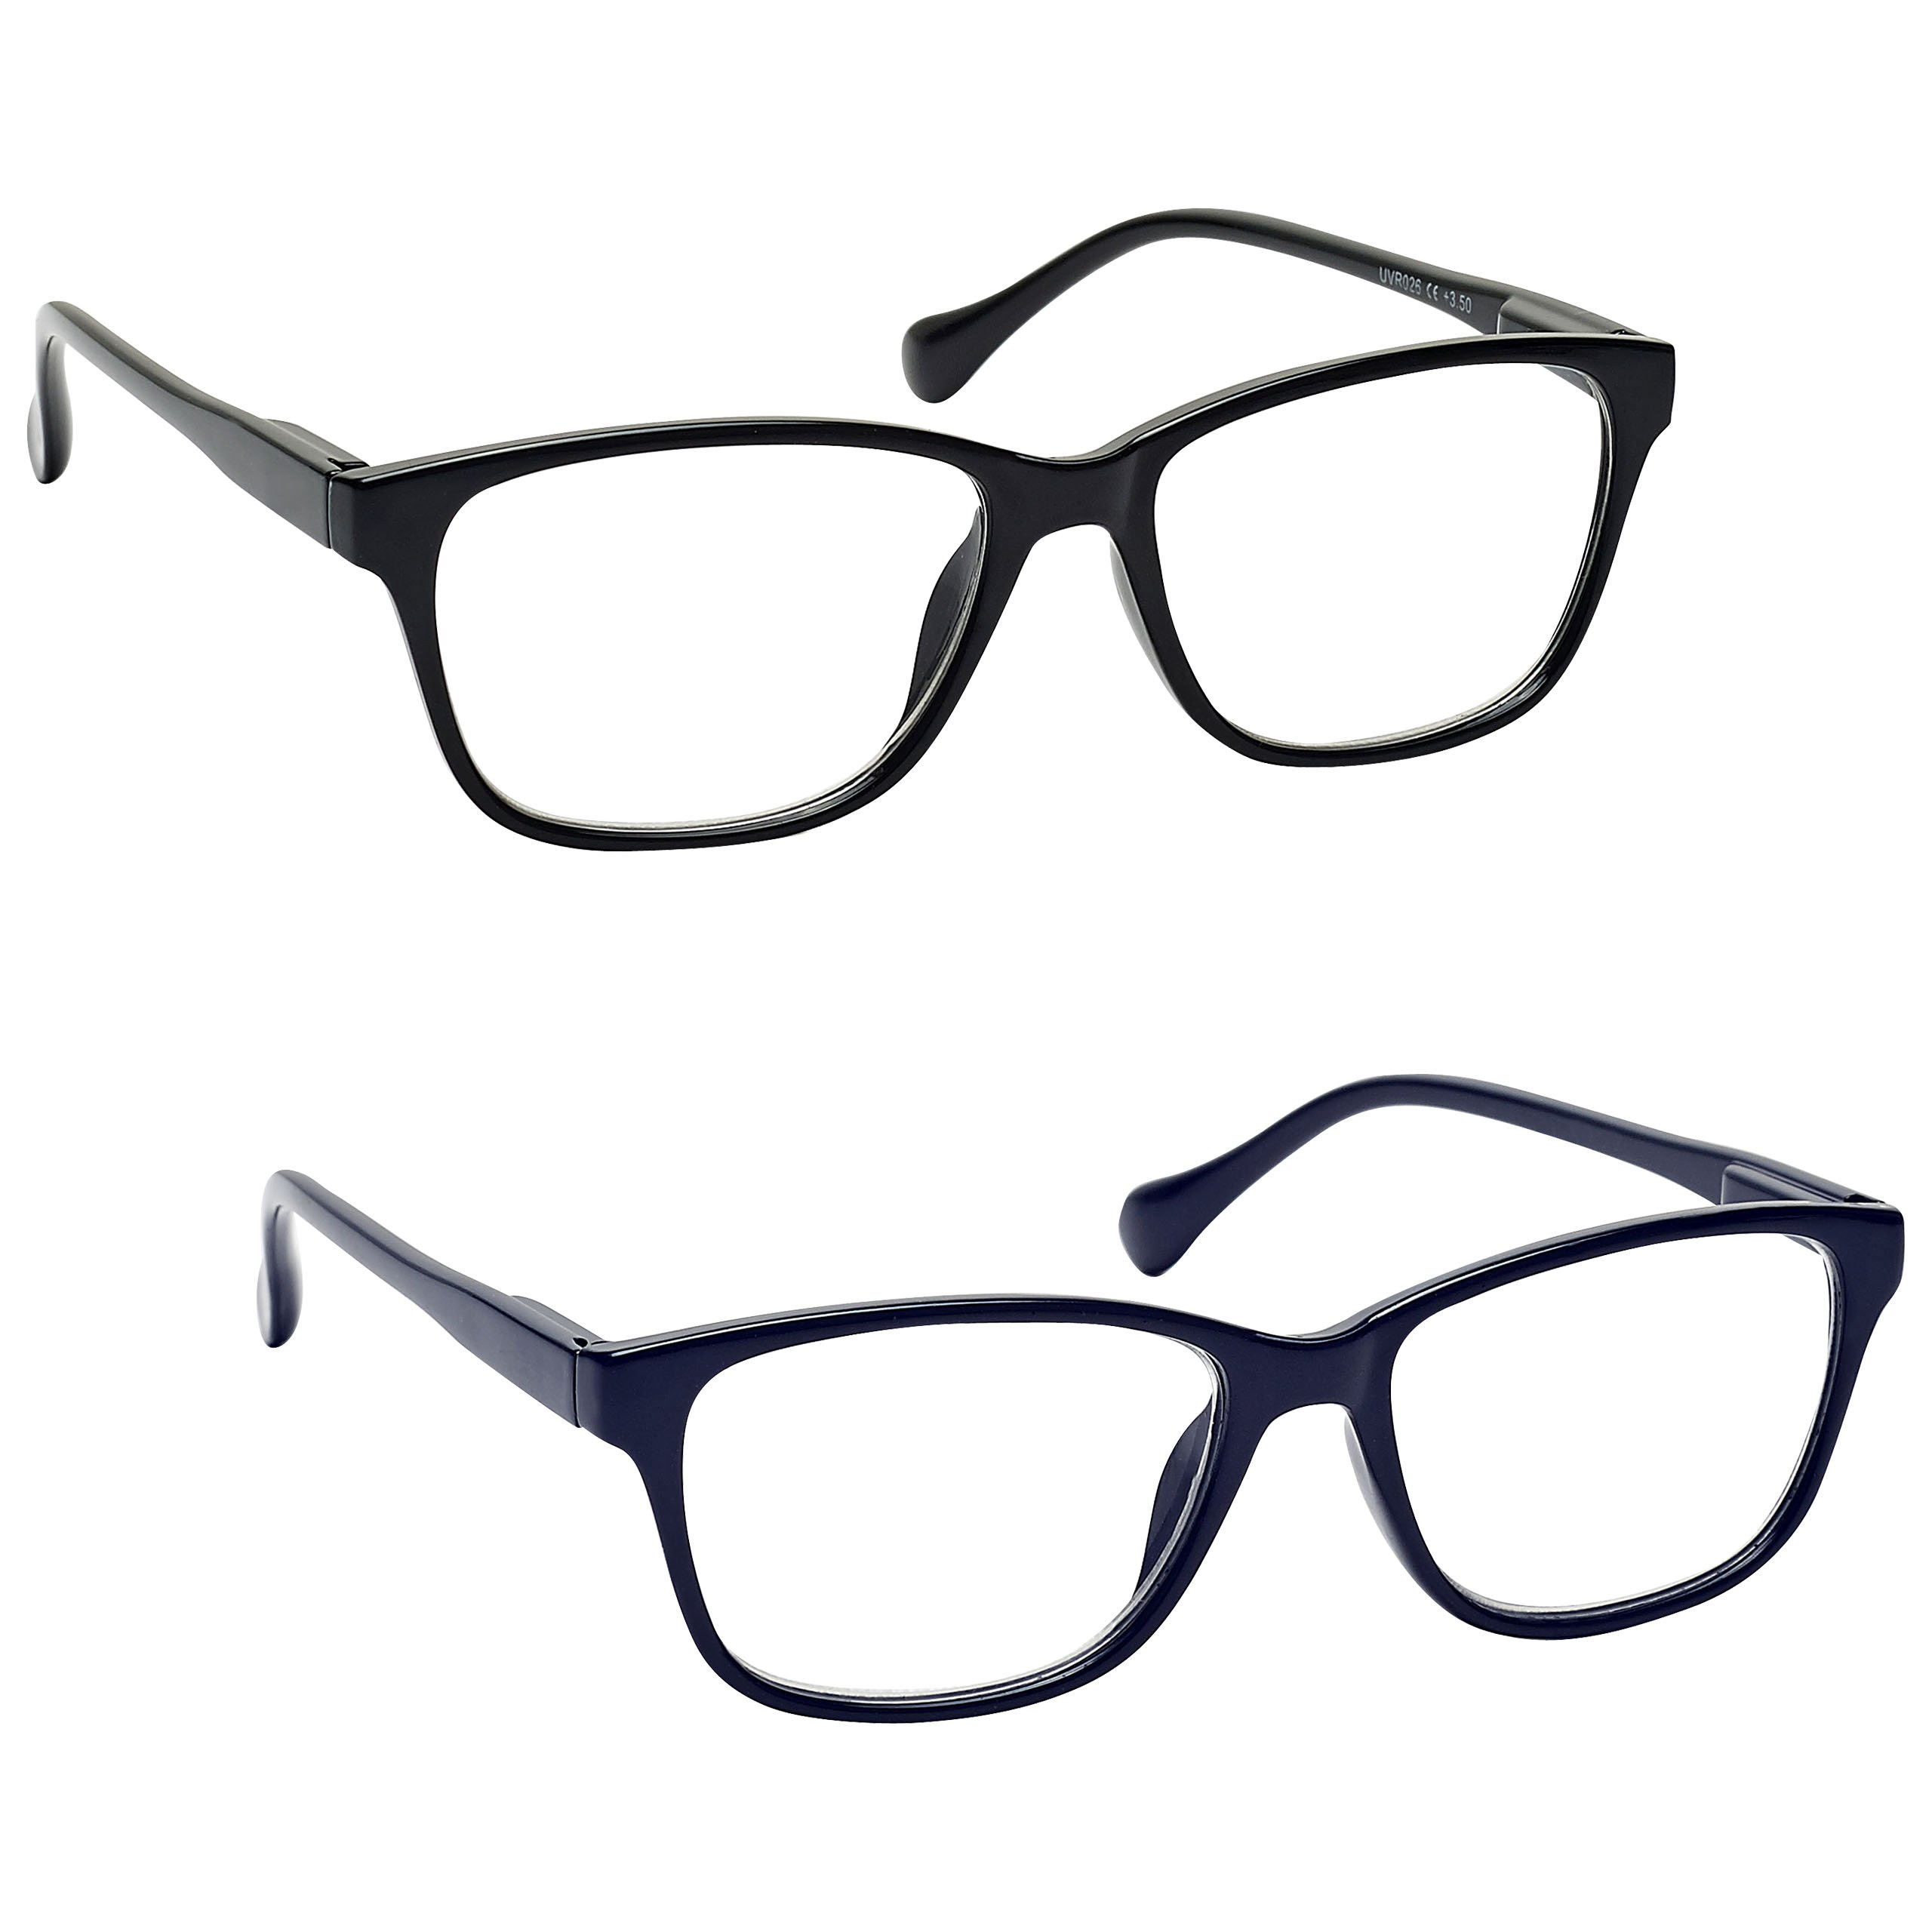 The Reading Glasses Company Black & Navy Blue Lightweight Readers Value 2 Pack Mens Womens Inc Bag RR27-13 +2.00